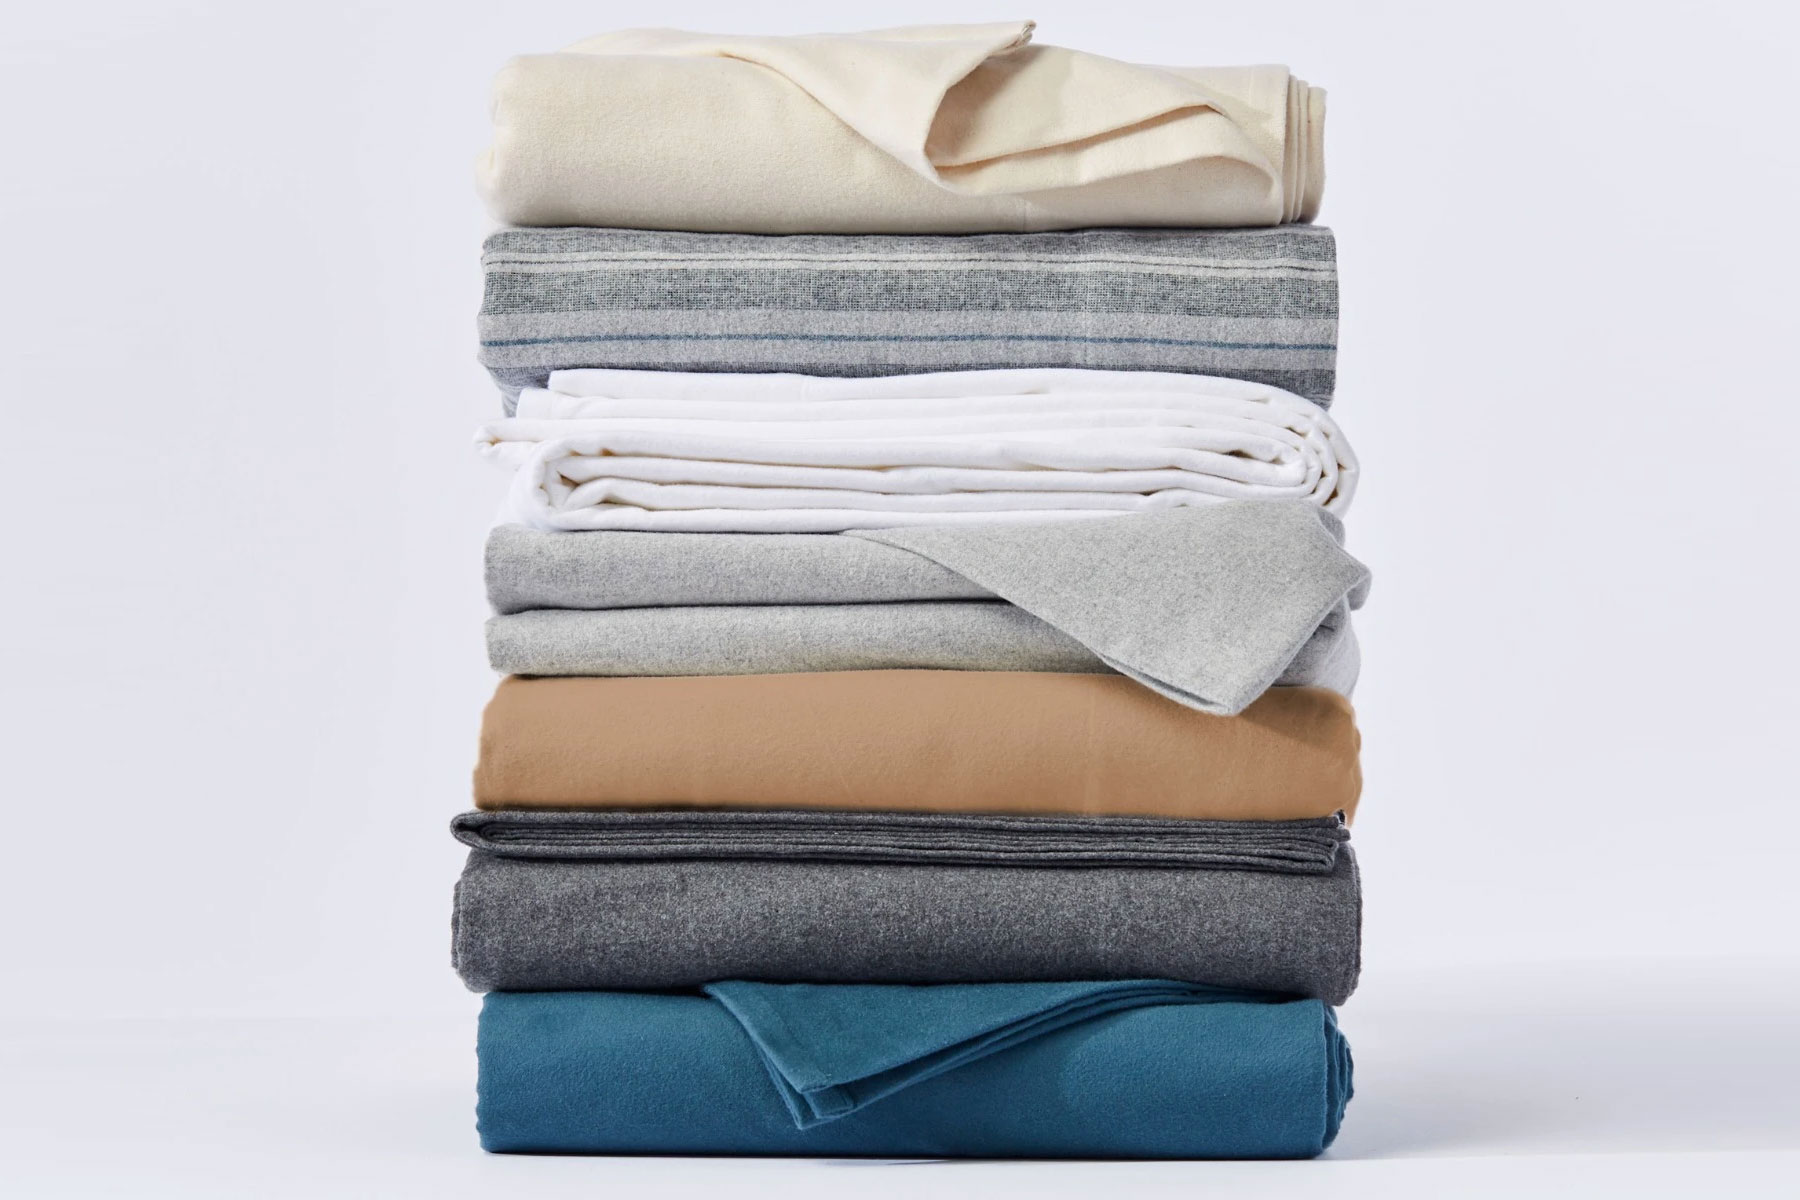 Various colors of flannel bedding/sheets